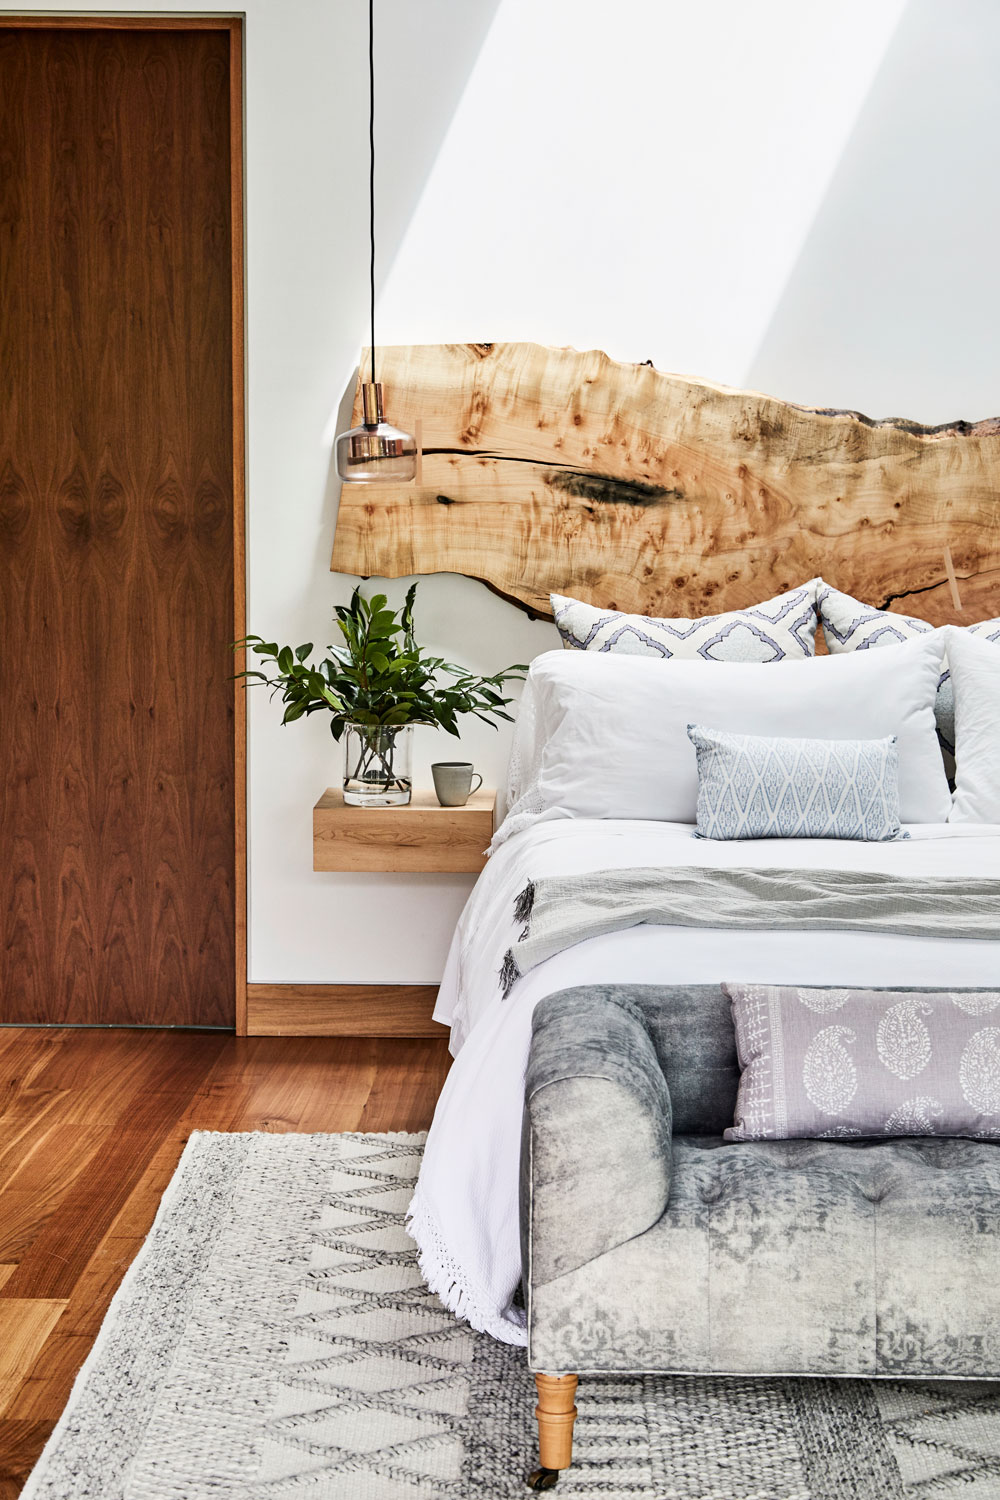 Stranger Furniture's splayed maple headboard and floating nightstands are heavenly in this room.